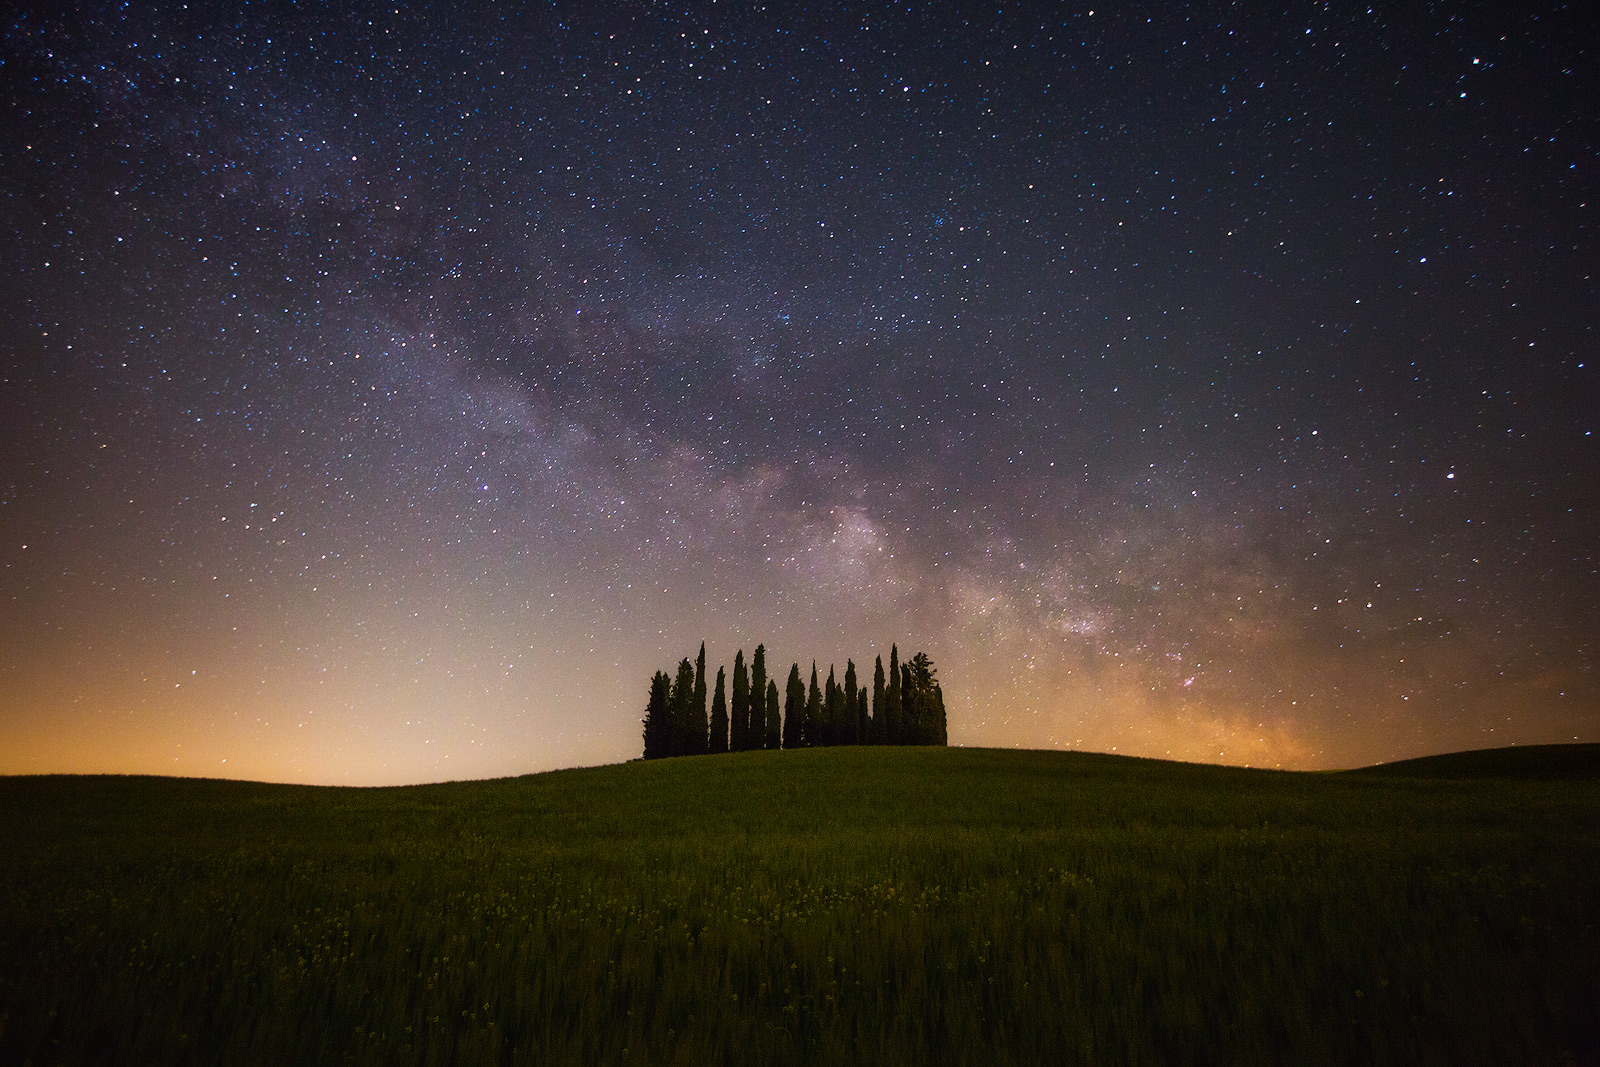 2016,May,Spring,cyprus,europe,hills,horizontal,italy,landscape,milky way,night,rolling,san quirico d'orcia,star,star trail,stars,trail,tree,trees,tuscany,wheat fields, photo